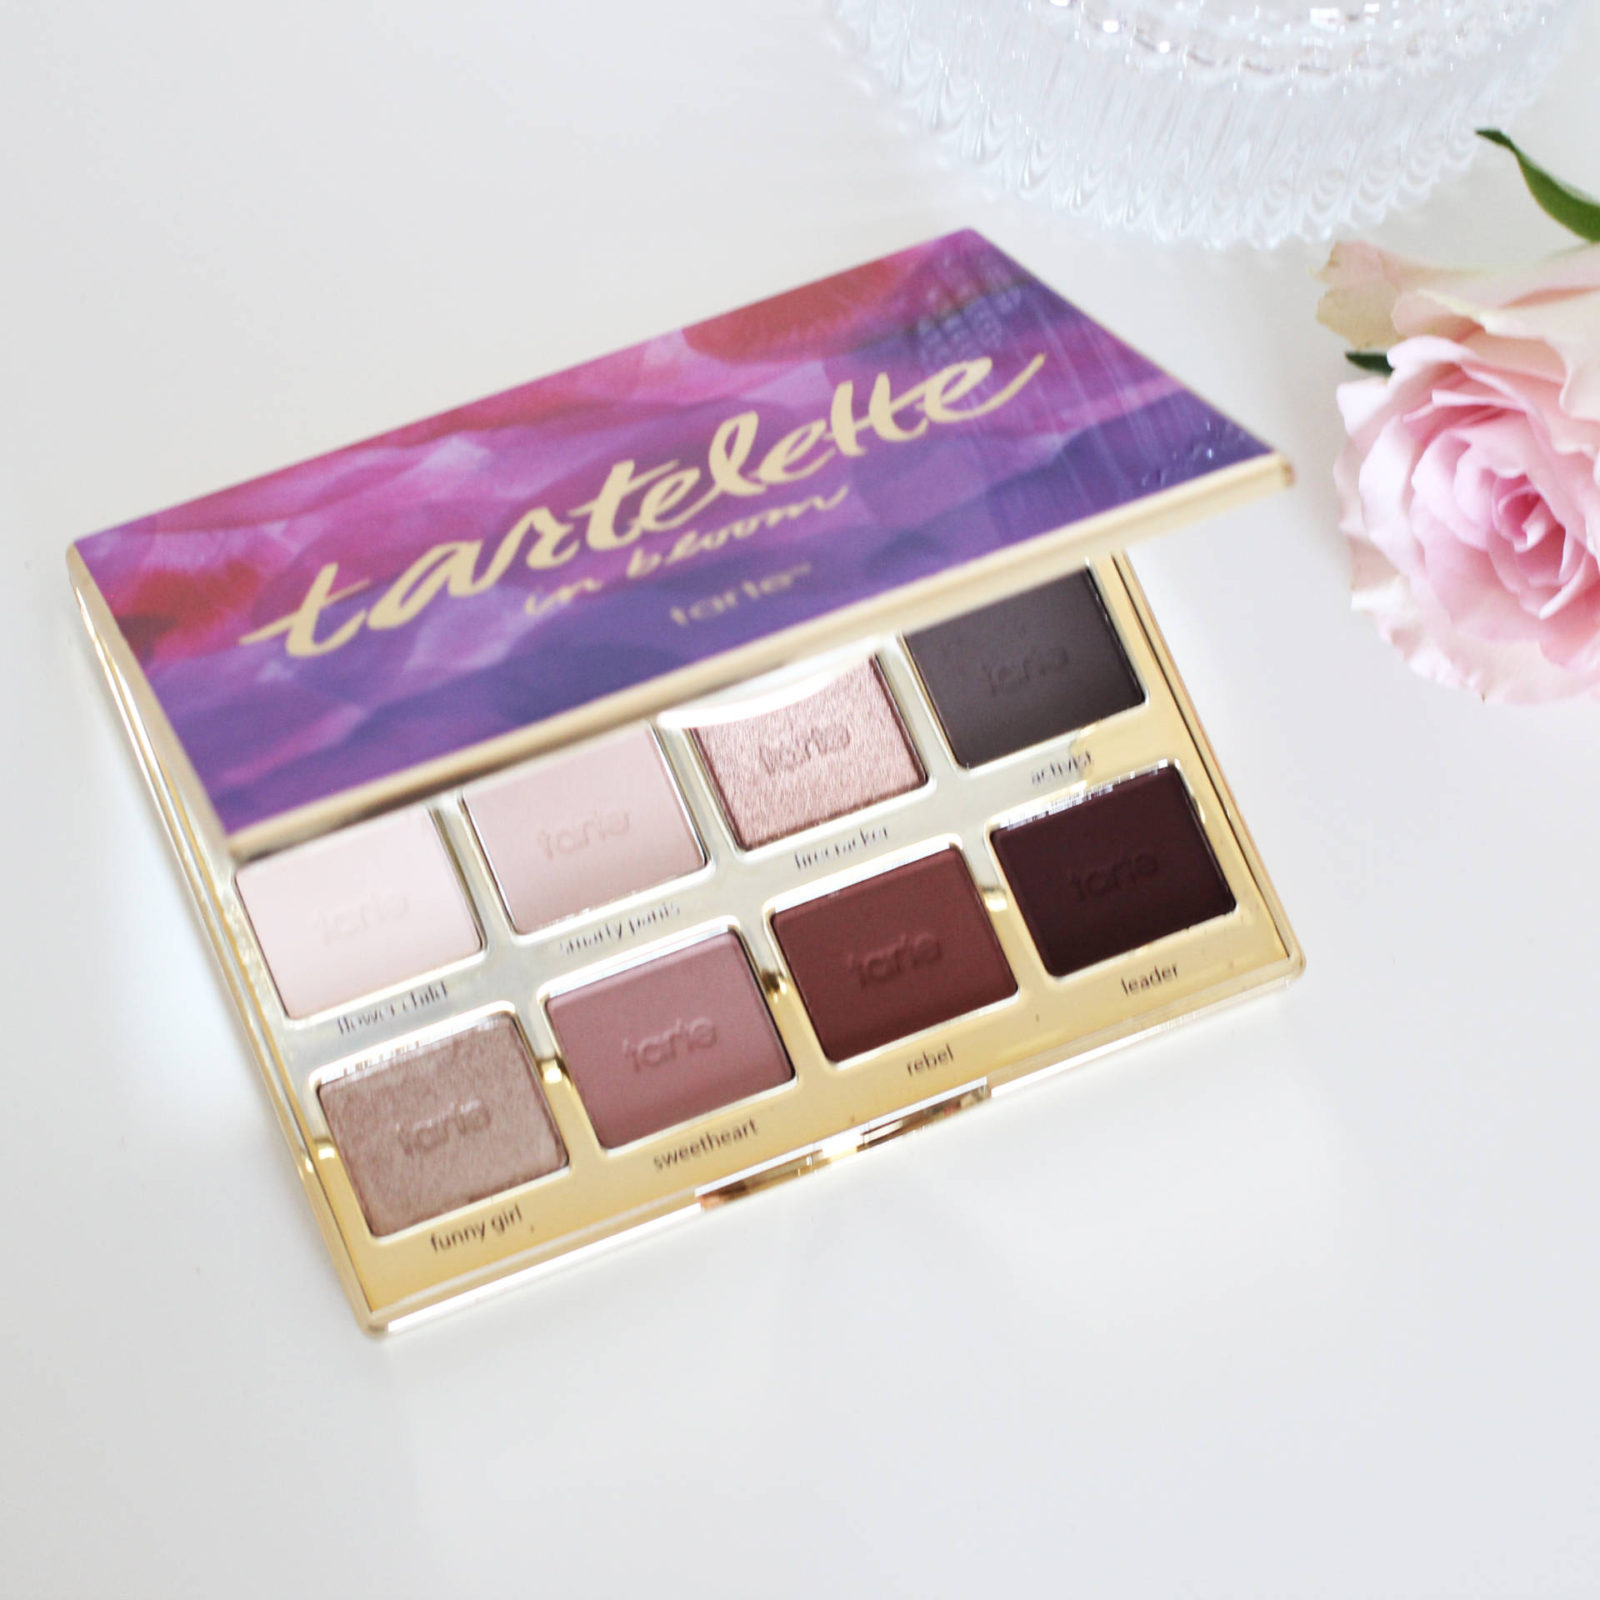 The Only Neutral Palette You'll Need… | Tarte Tartelette In Bloom Clay Palette Review and Look